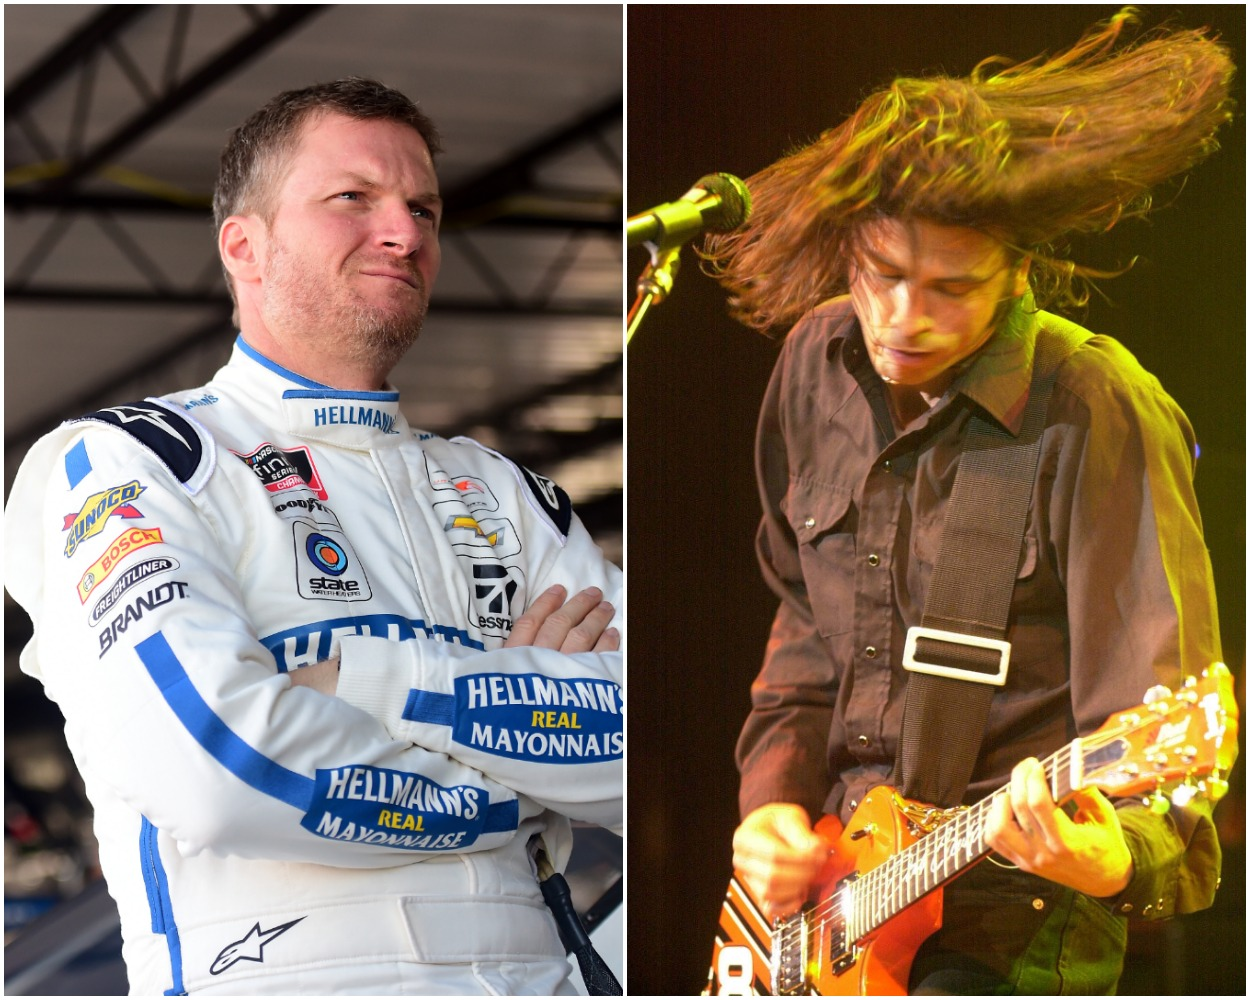 Dale Earnhardt Jr. and Dave Grohl have unique relationship